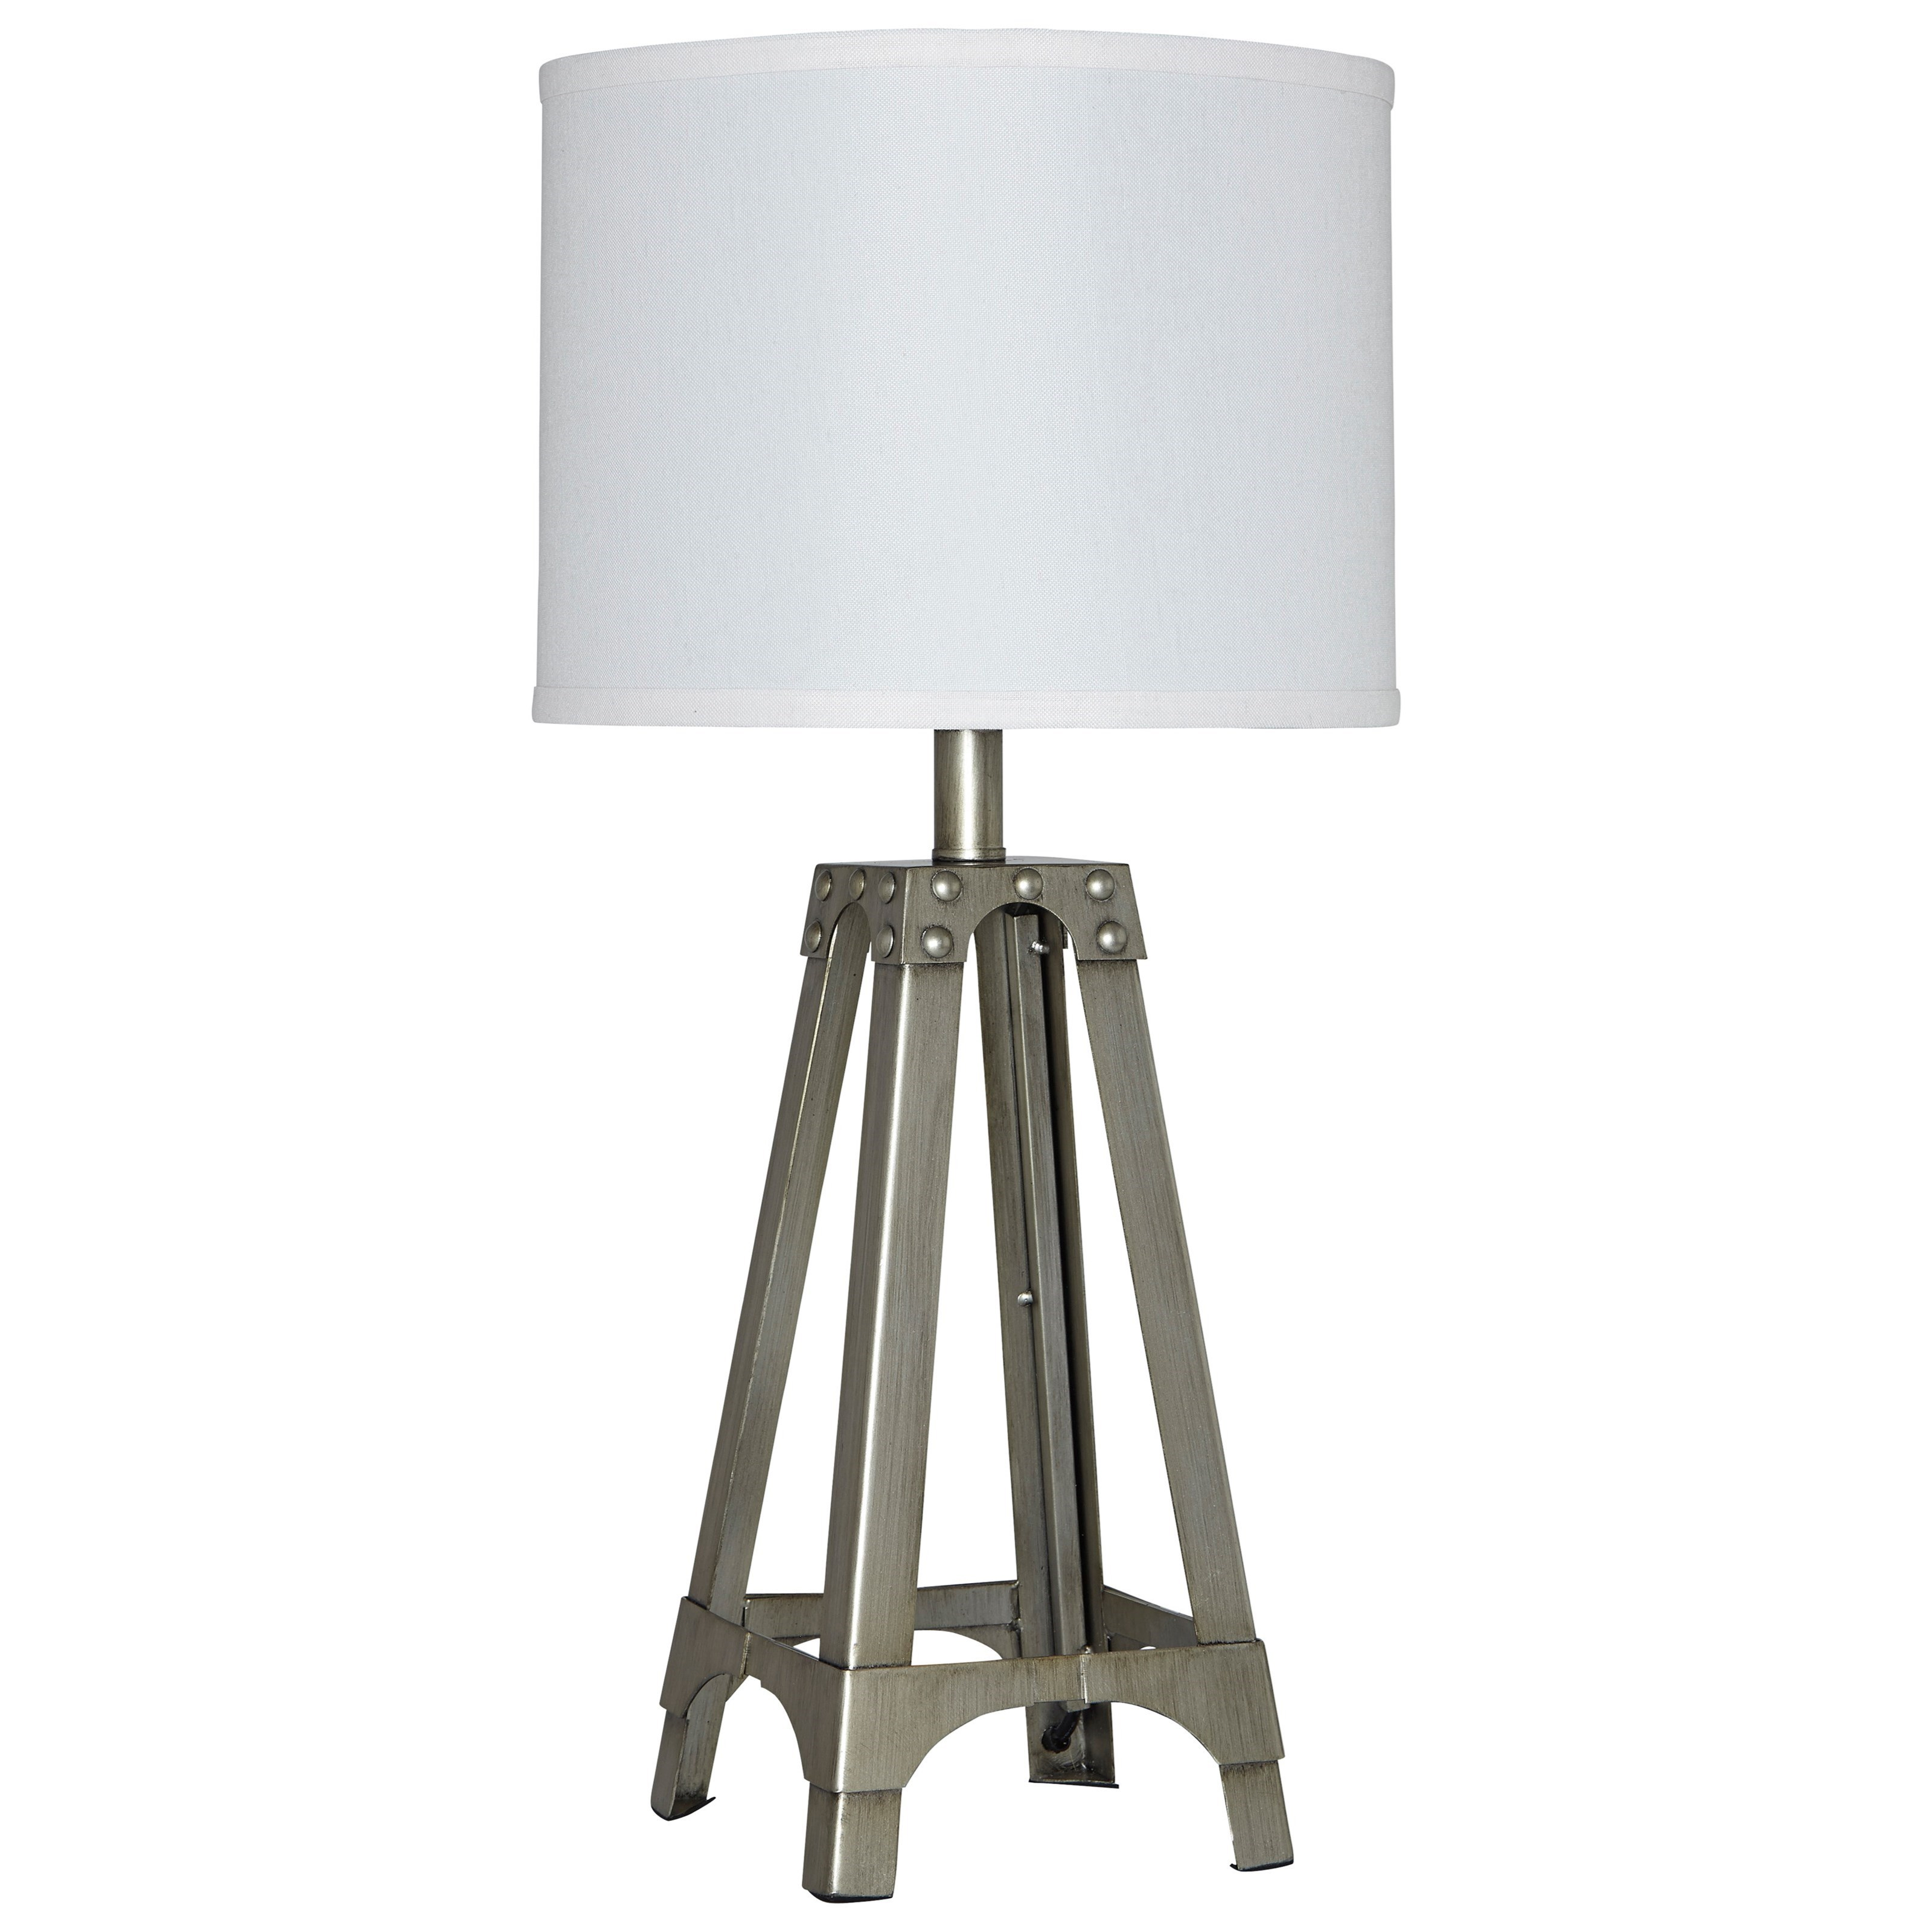 Signature Design by Ashley Lamps - Contemporary Arty Silver Finish Metal Table Lamp - Item Number: L857584